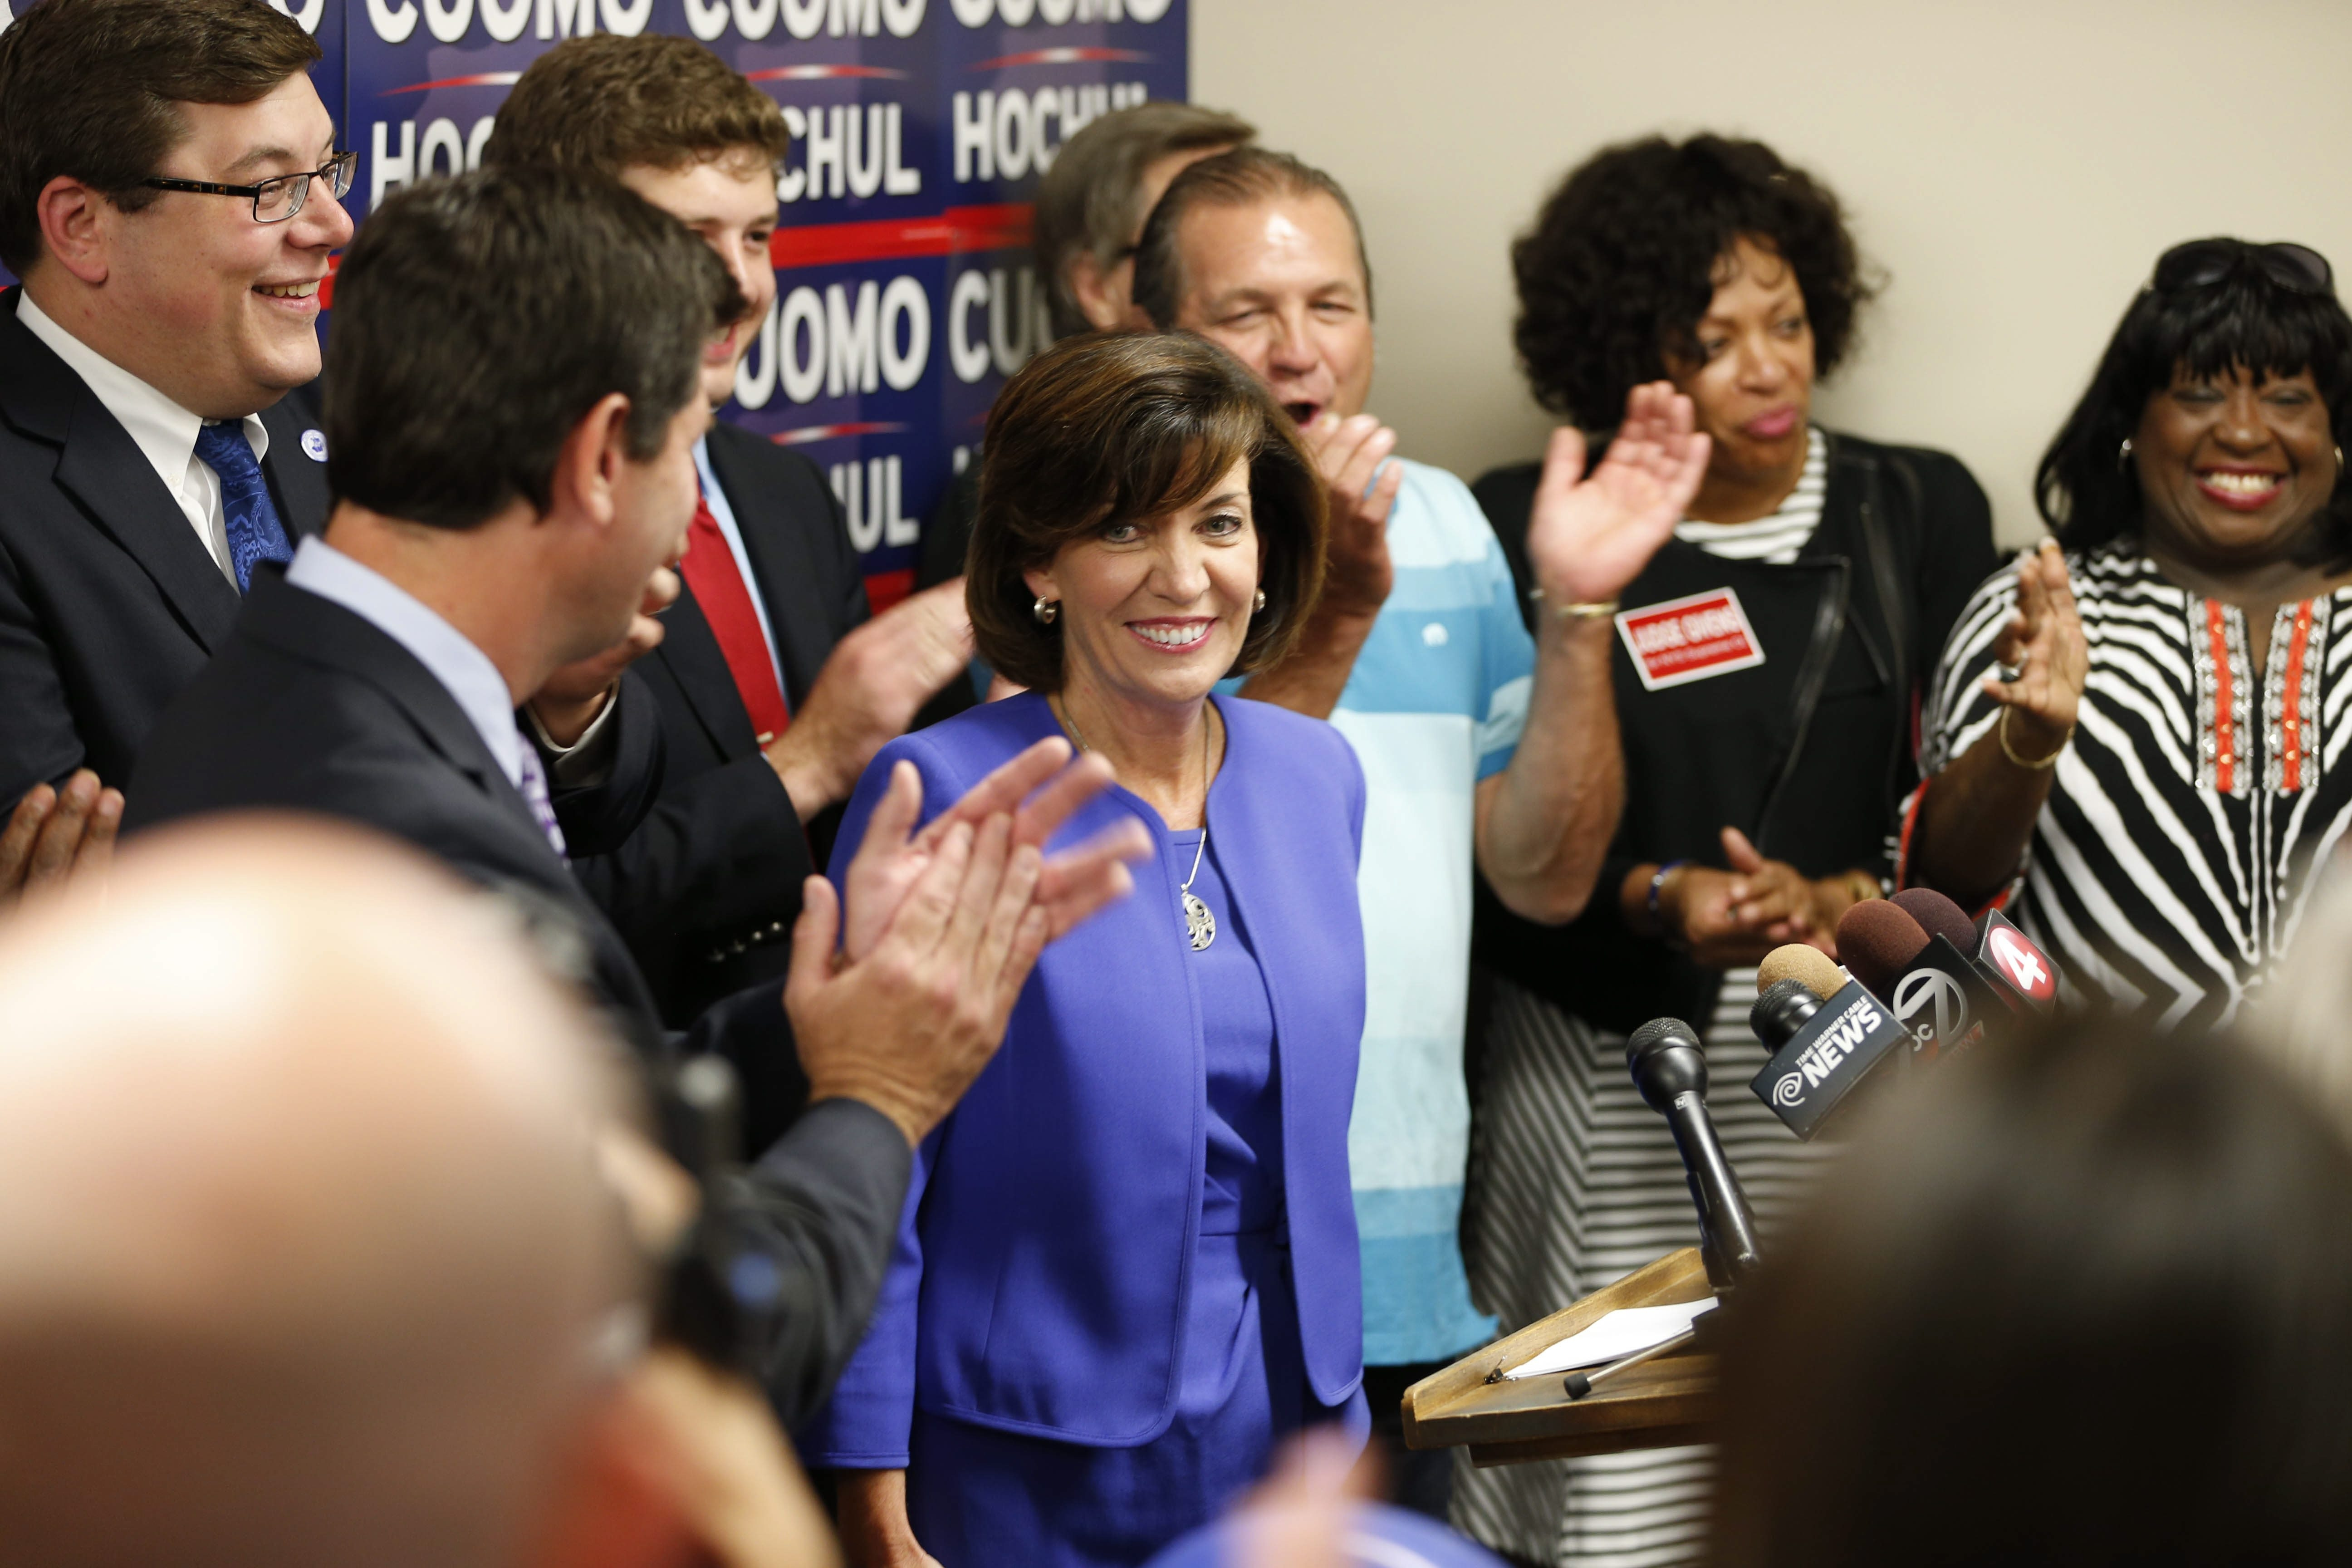 Kathy Hochul addresses supporters at Democratic Headquarters in downtown Buffalo after her primary election victory Tuesday over Tim Wu for the lieutenant governor spot with Gov. Andrew M. Cuomo.